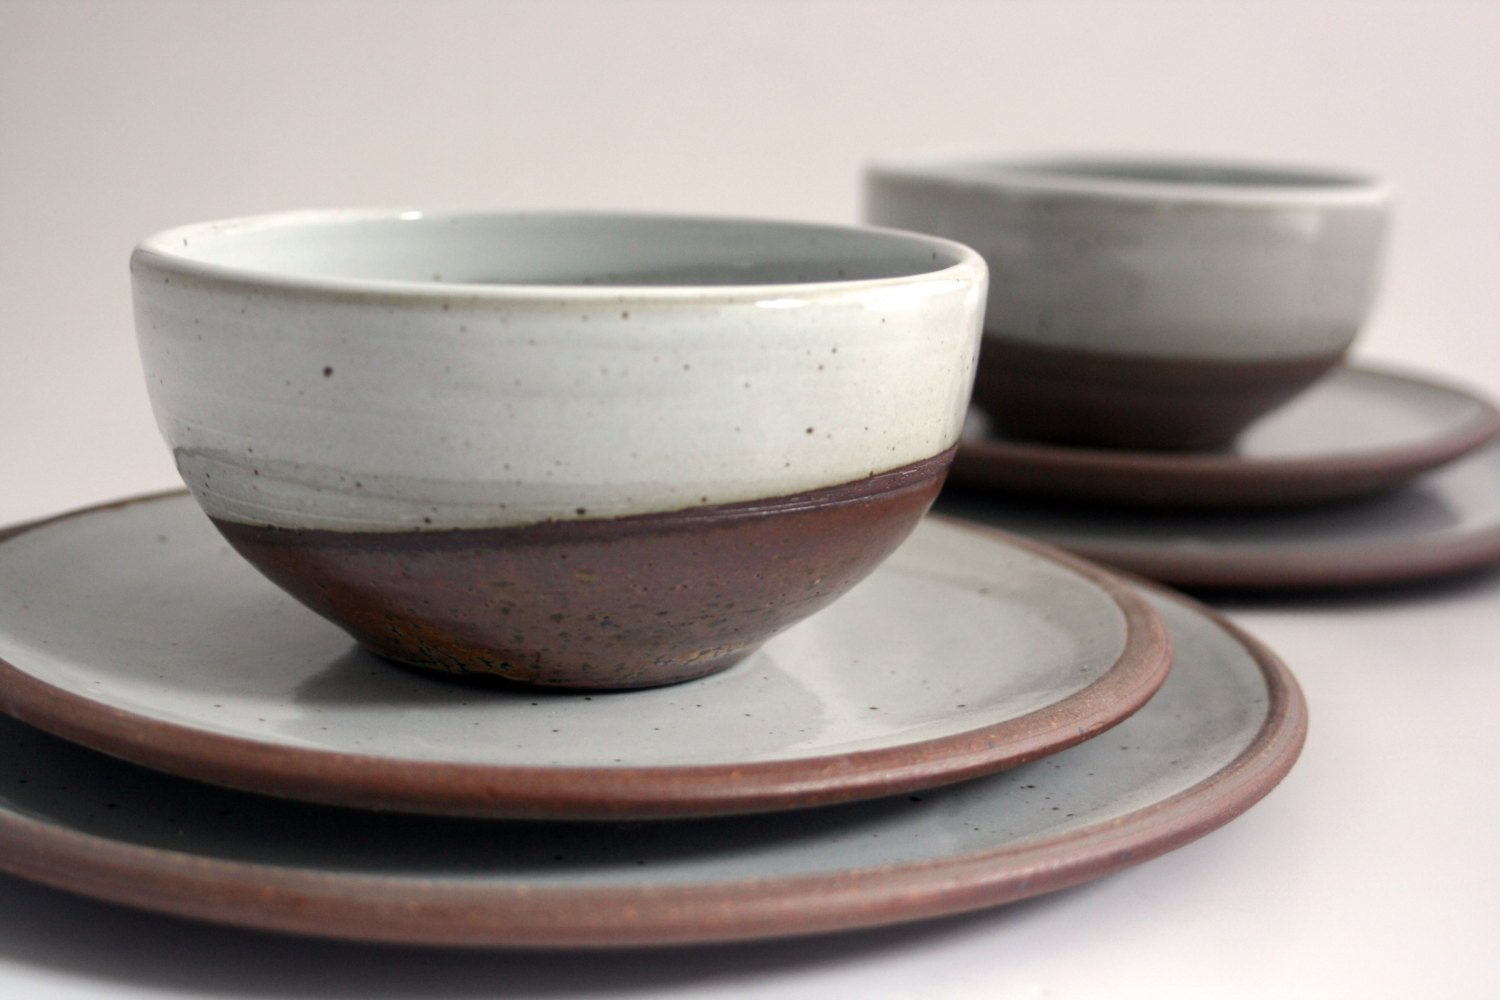 Tableware by Cincinnati-based ceramics artist Bethany Rose Kramer. I'm going to mix a few of her pieces with my everyday plates, which are Heath Ceramics Rim series.  Square Meal